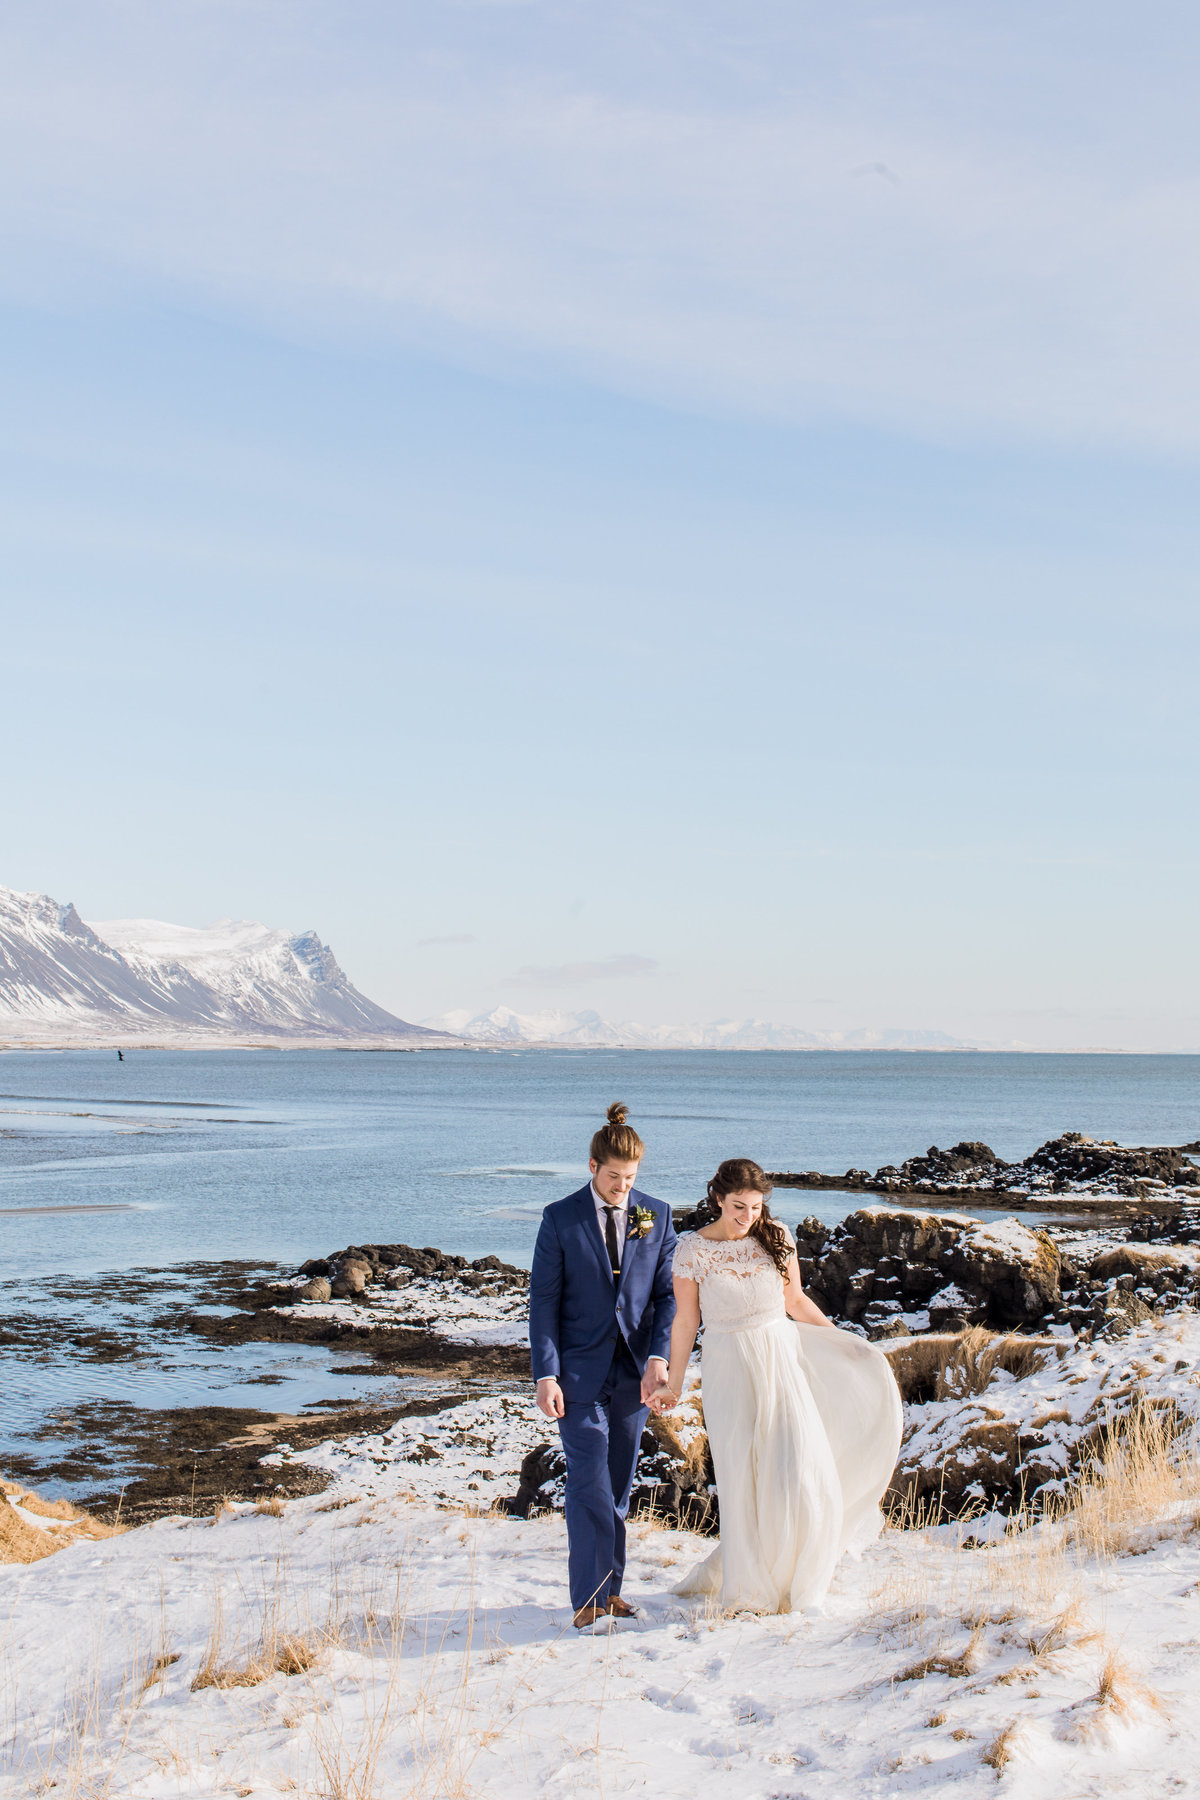 IcelandWedding_OliviaScott_CatherineRhodesPhotography-644-Edit